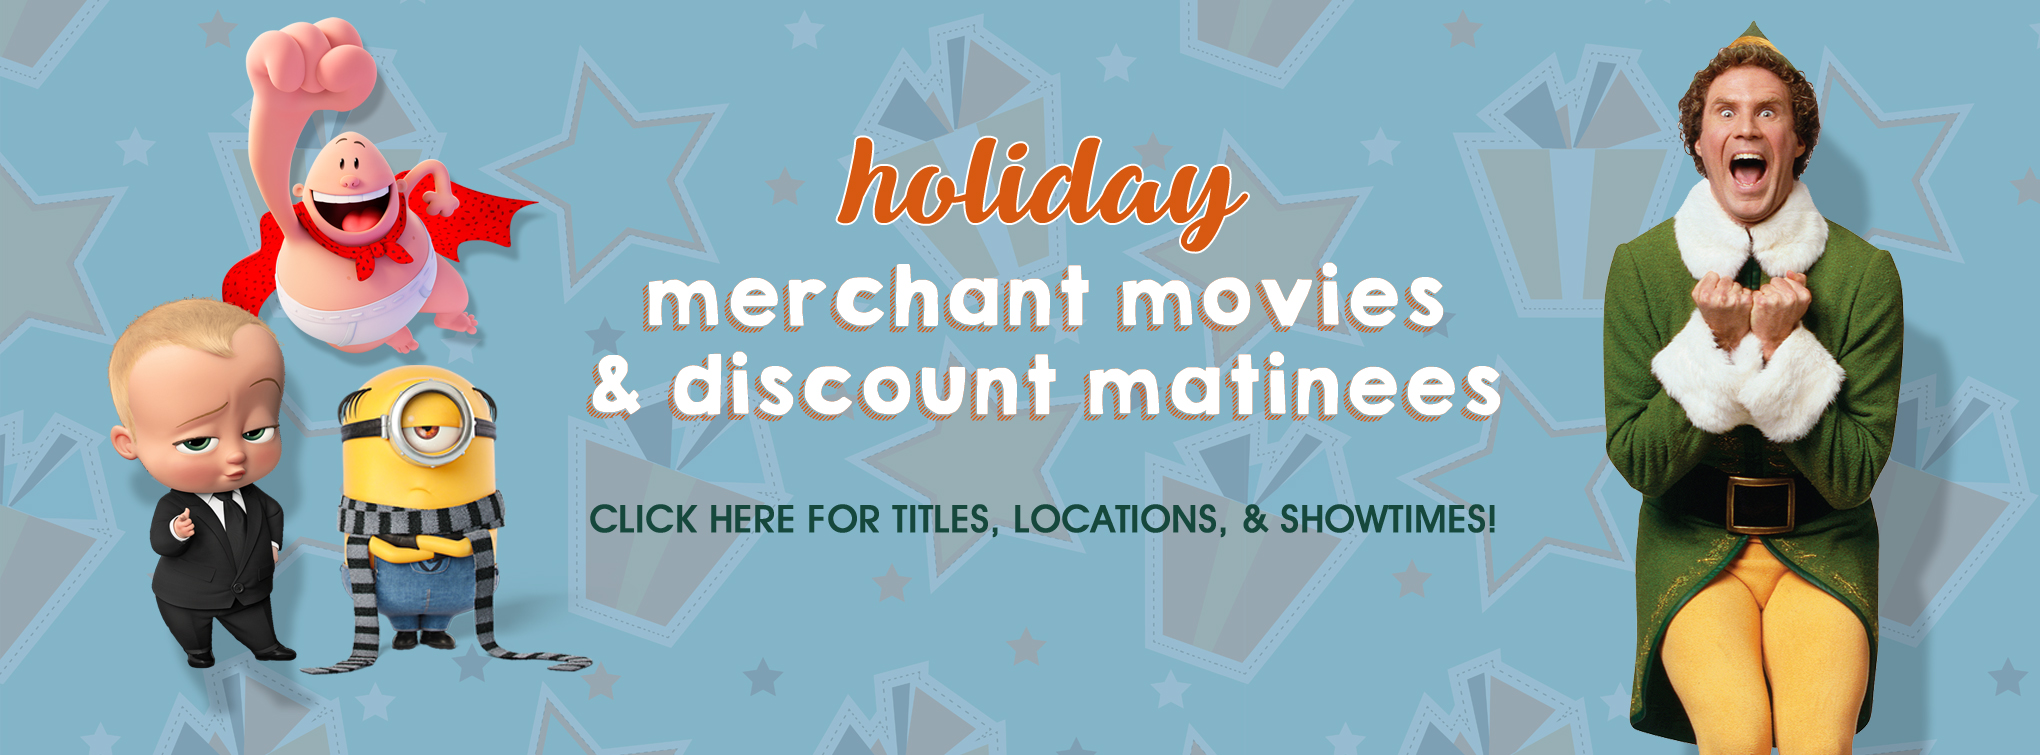 Slider image for holiday merchant movies and discount matinees